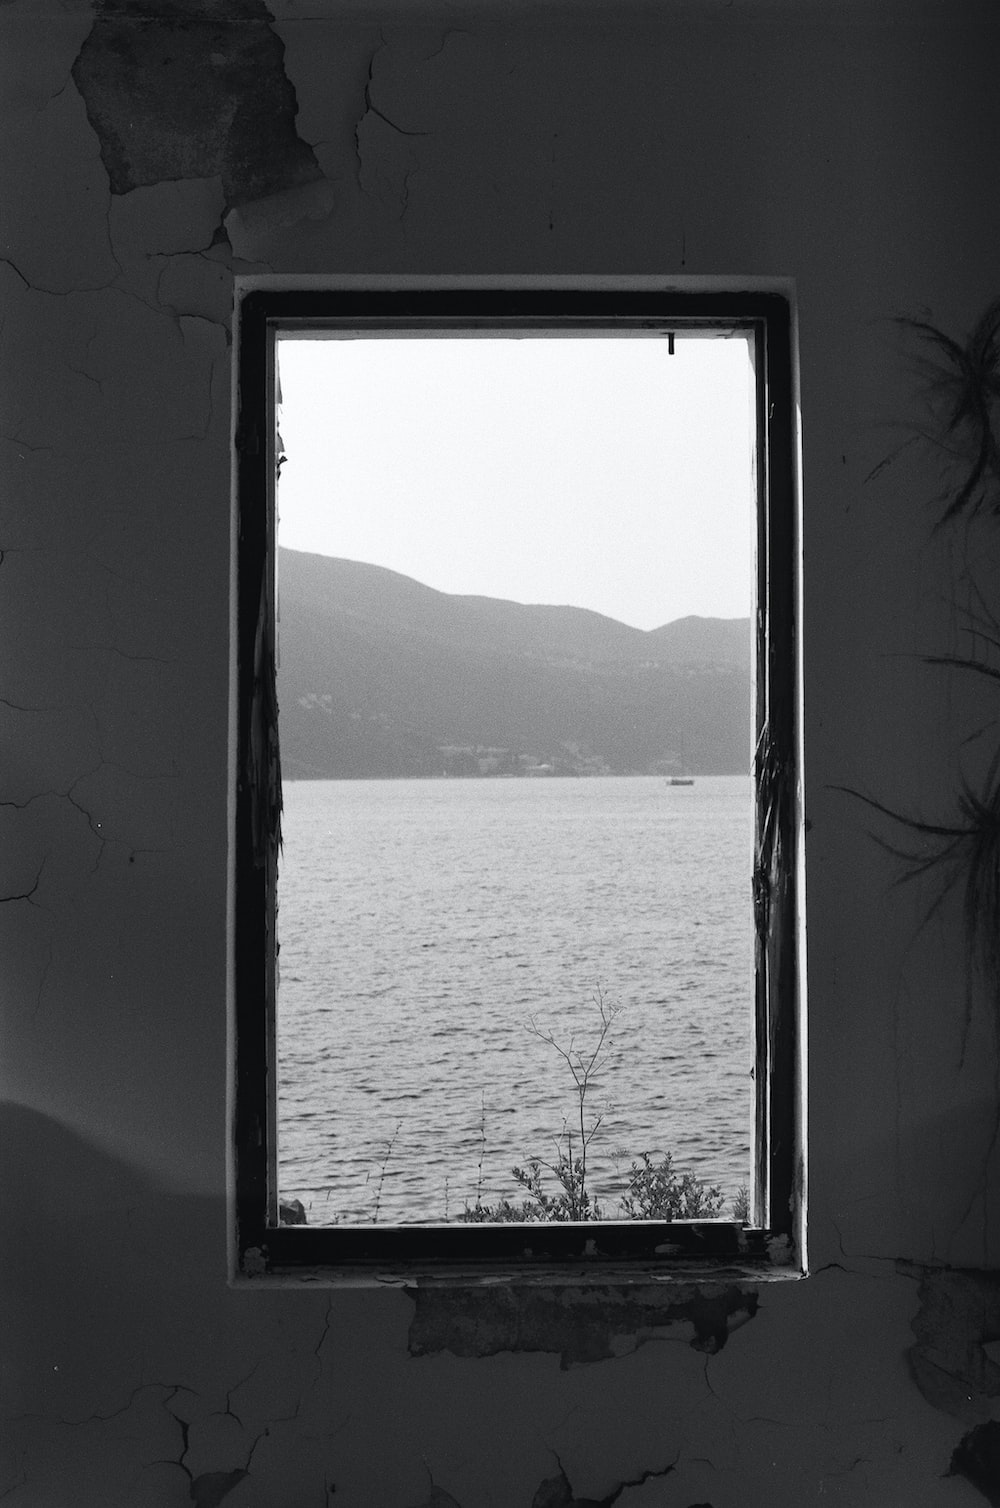 grayscale photo of body of water through glass window